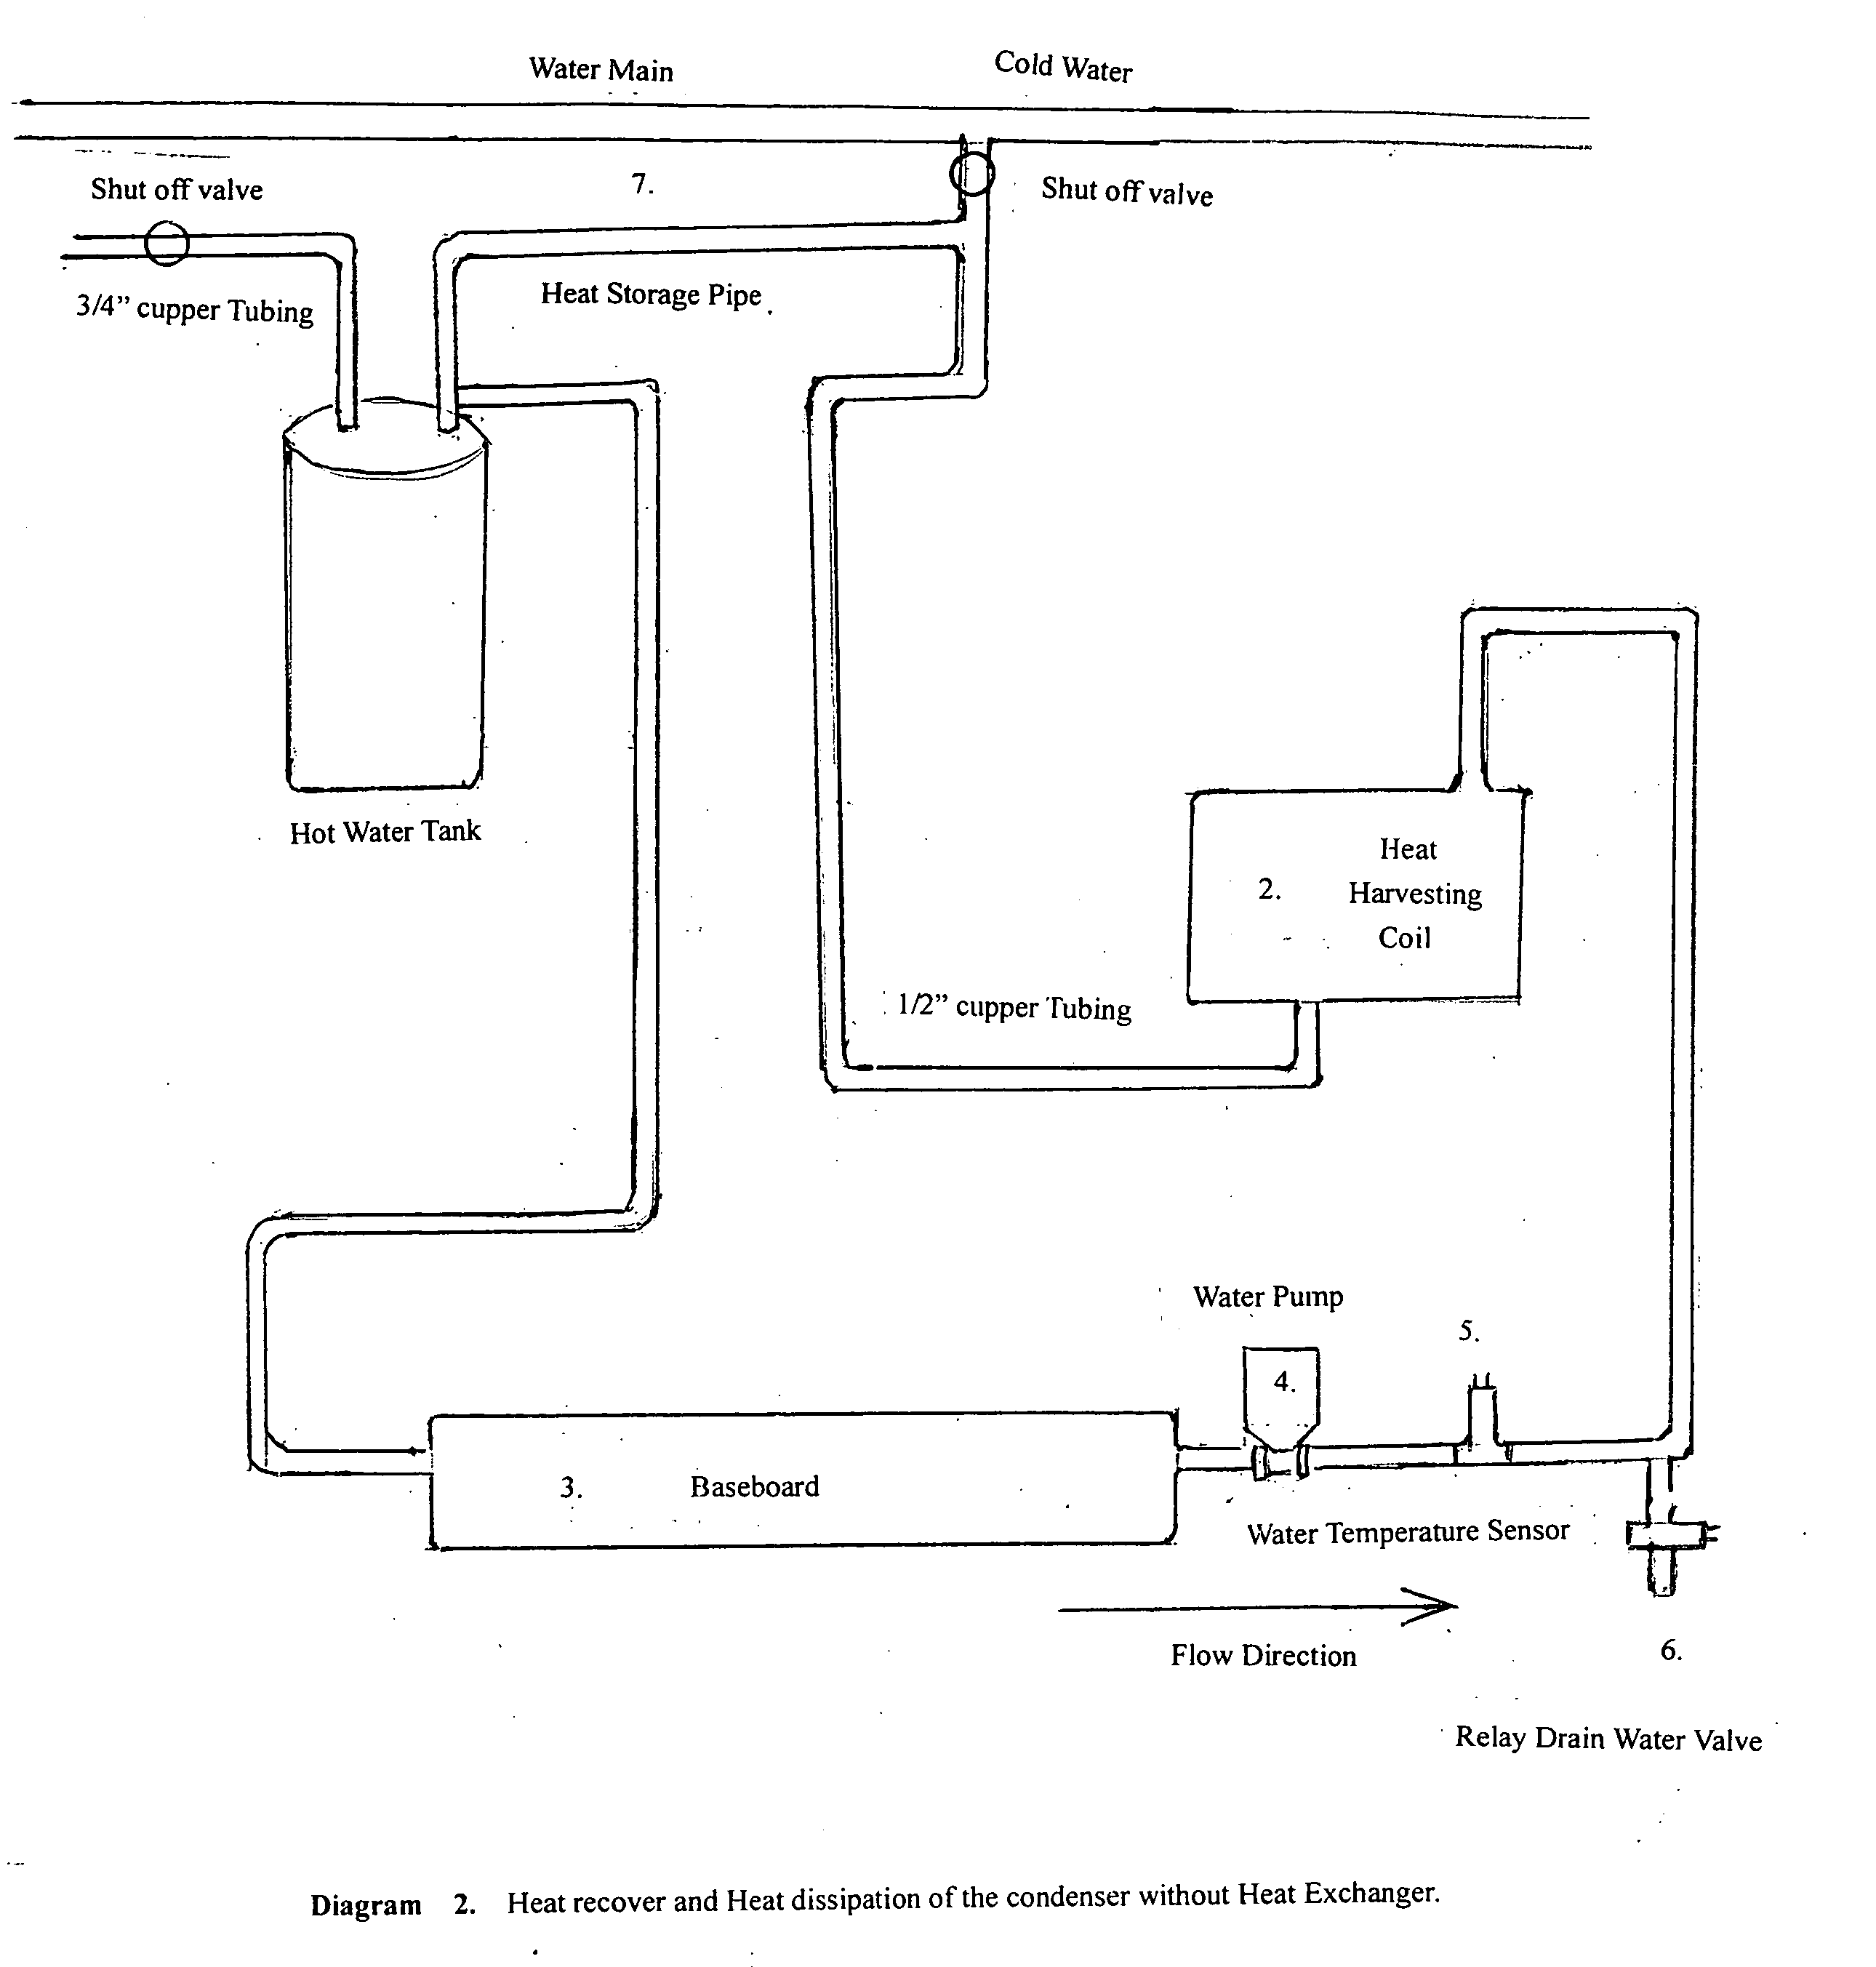 Patent US Heat recovery and heat dissipated from the